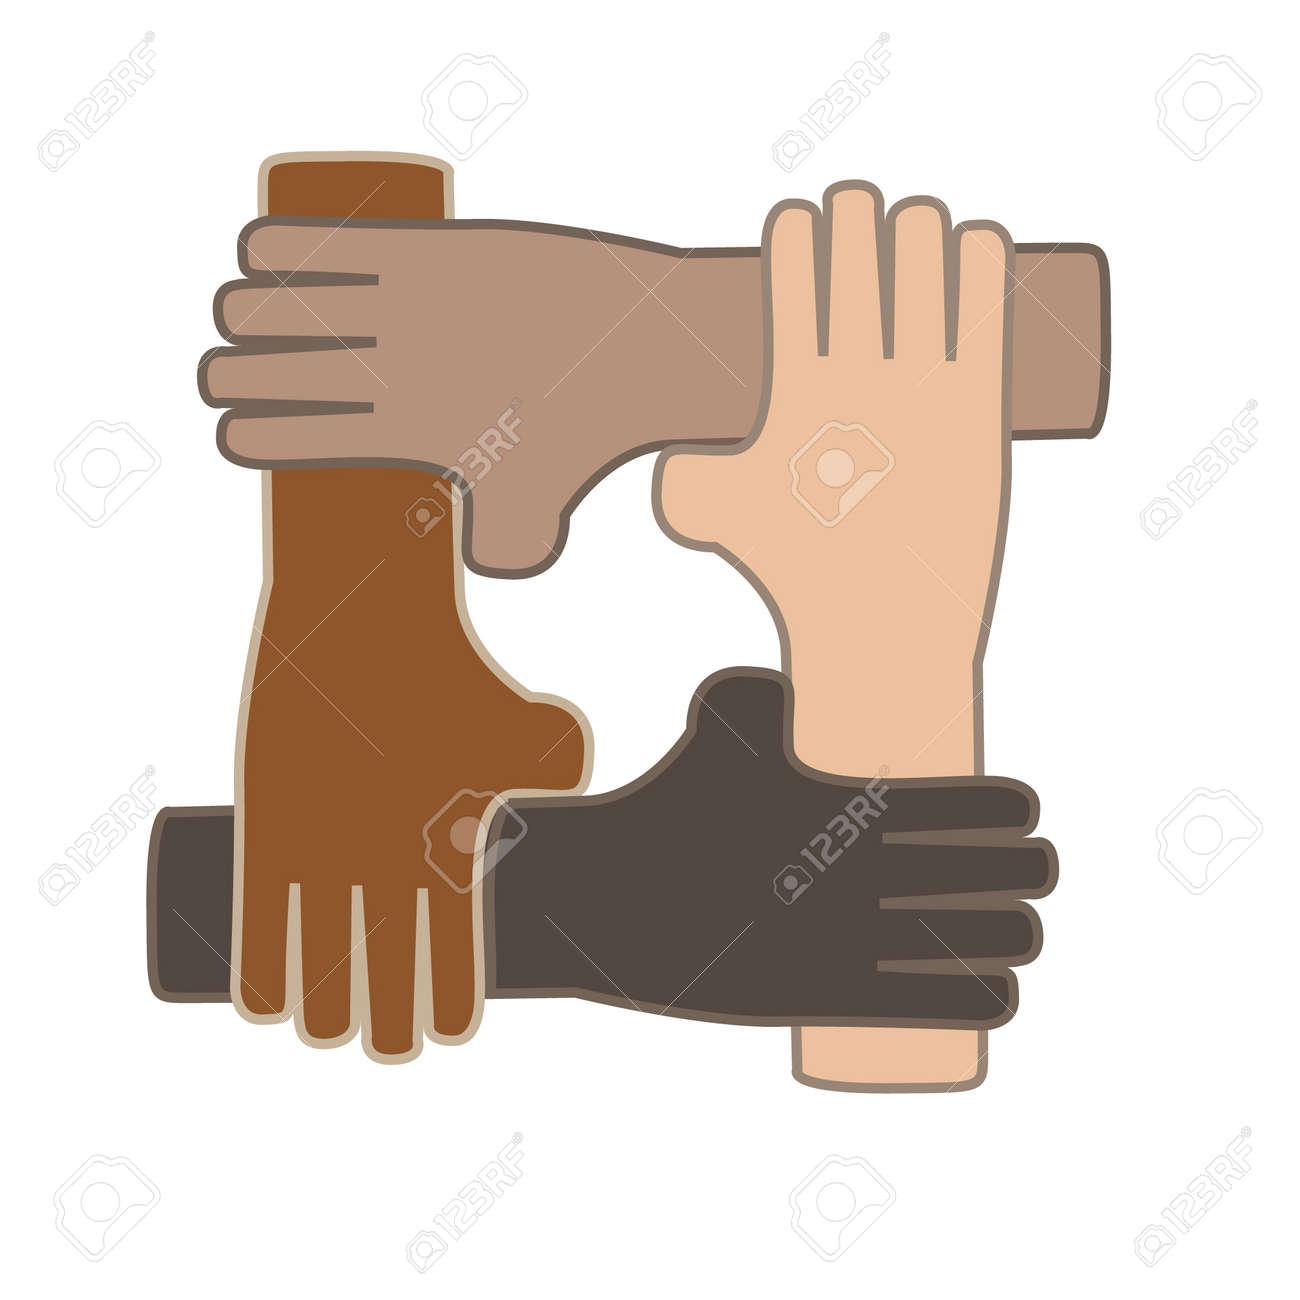 Hands Together As Symbol Of Unity And Partnership Royalty Free Cliparts Vectors And Stock Illustration Image 21193048